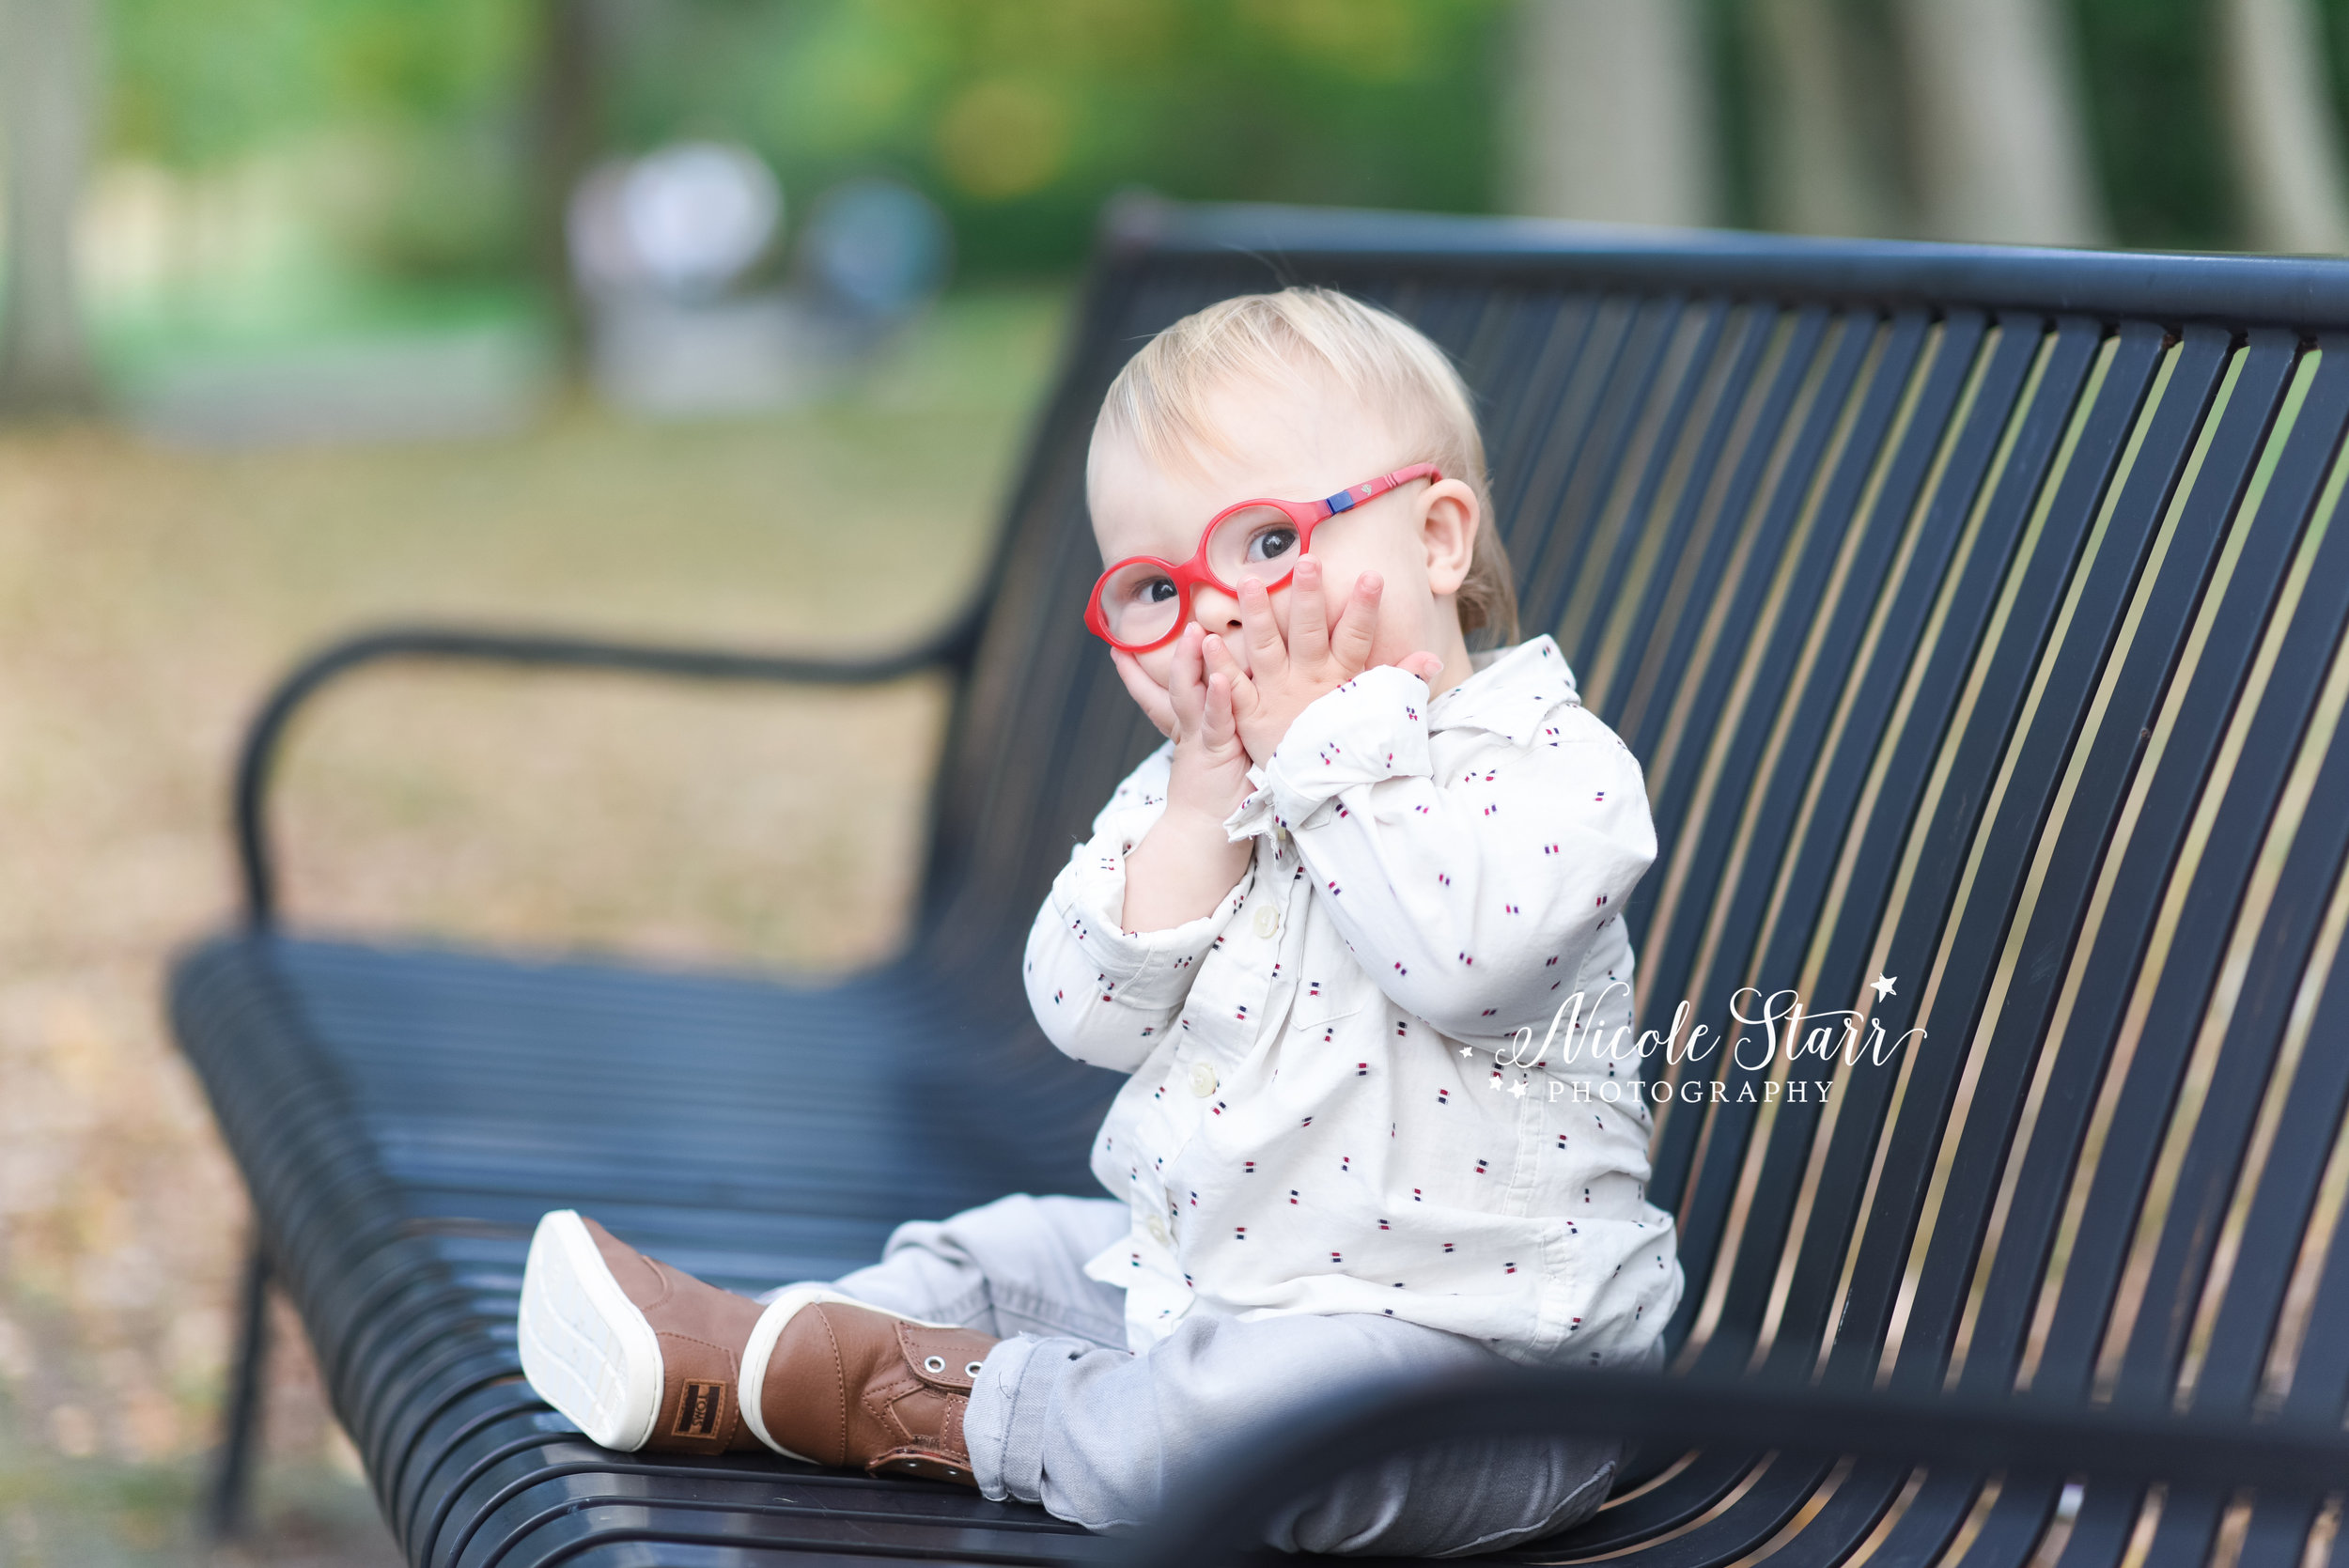 Nicole Starr Photography | Saratoga Springs Family Photographer | Boston Family Photographer | Upstate NY Family Photographer | Family Photographer | Special Needs Photographer | Down Syndrome Photographer